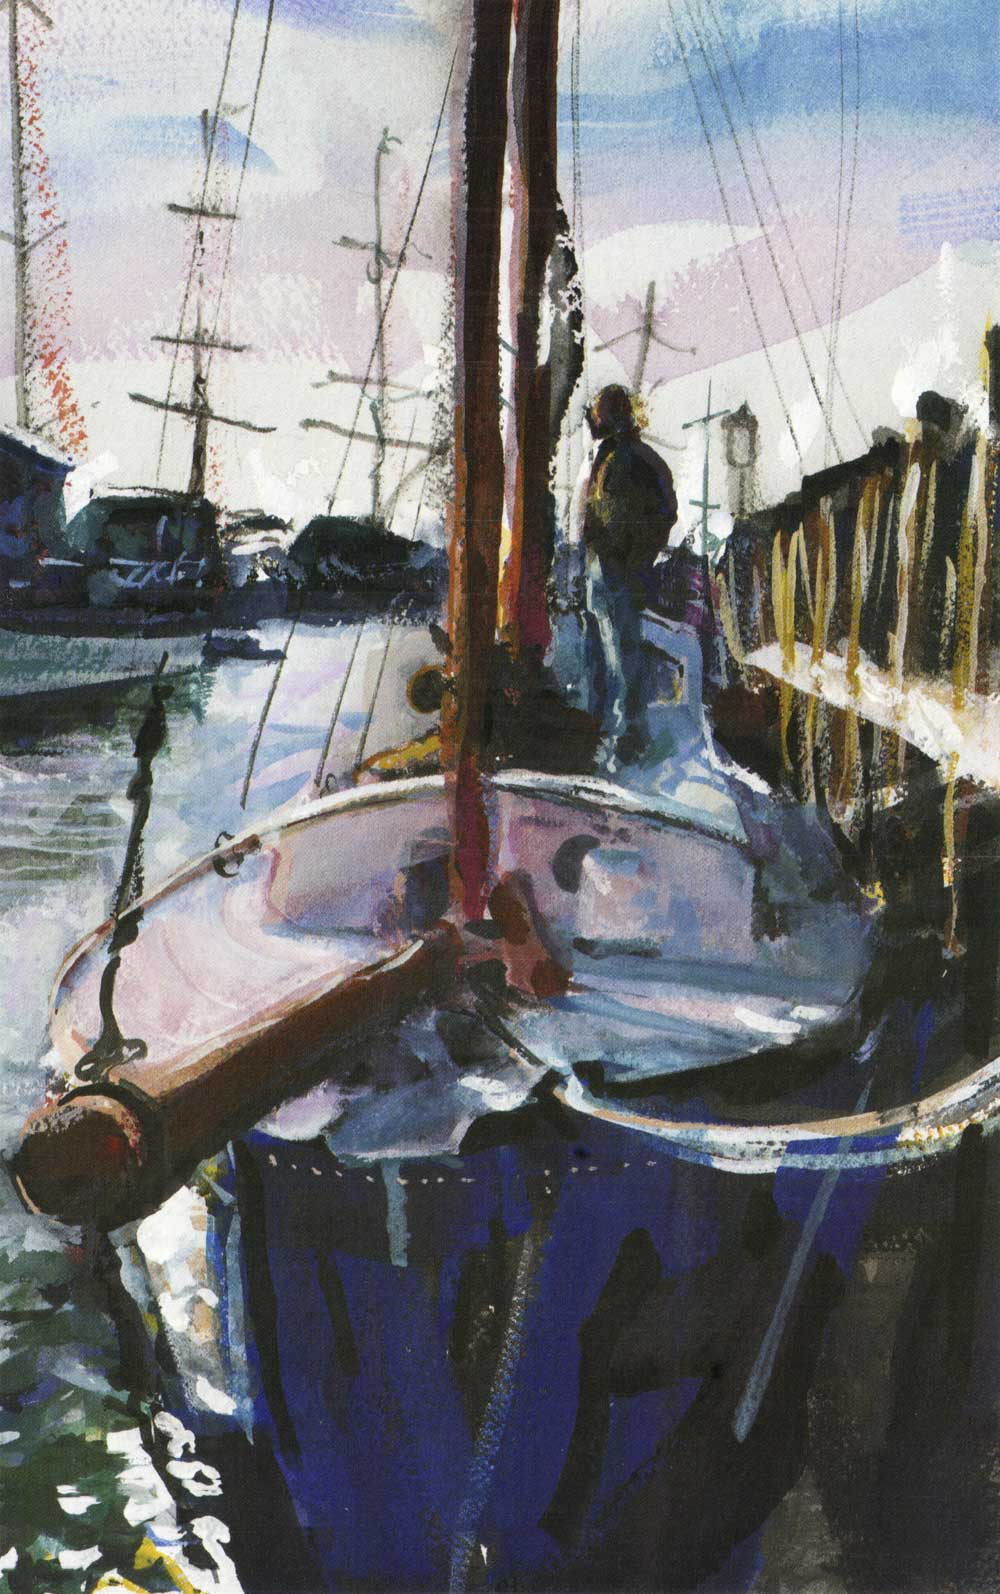 Schooner on Recovery, Bowen's Wharf, Winter 1998